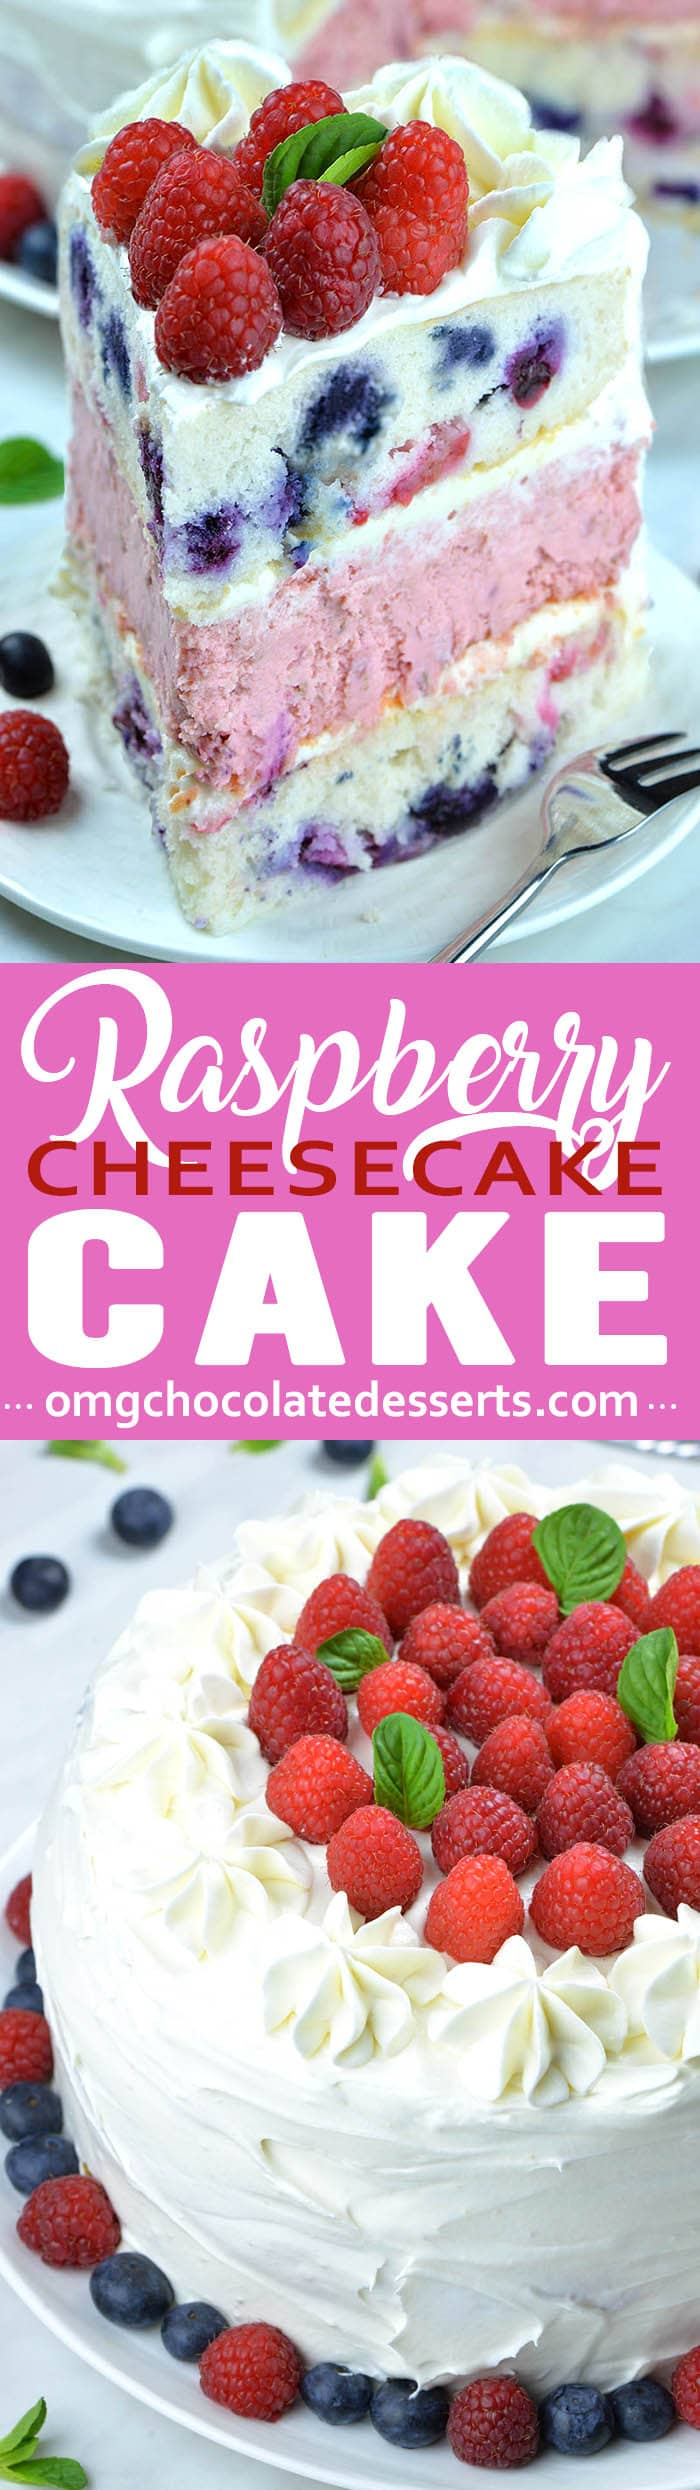 This unique combination of fluffy cake and cheesecake creates a large stunning raspberry layer cake.